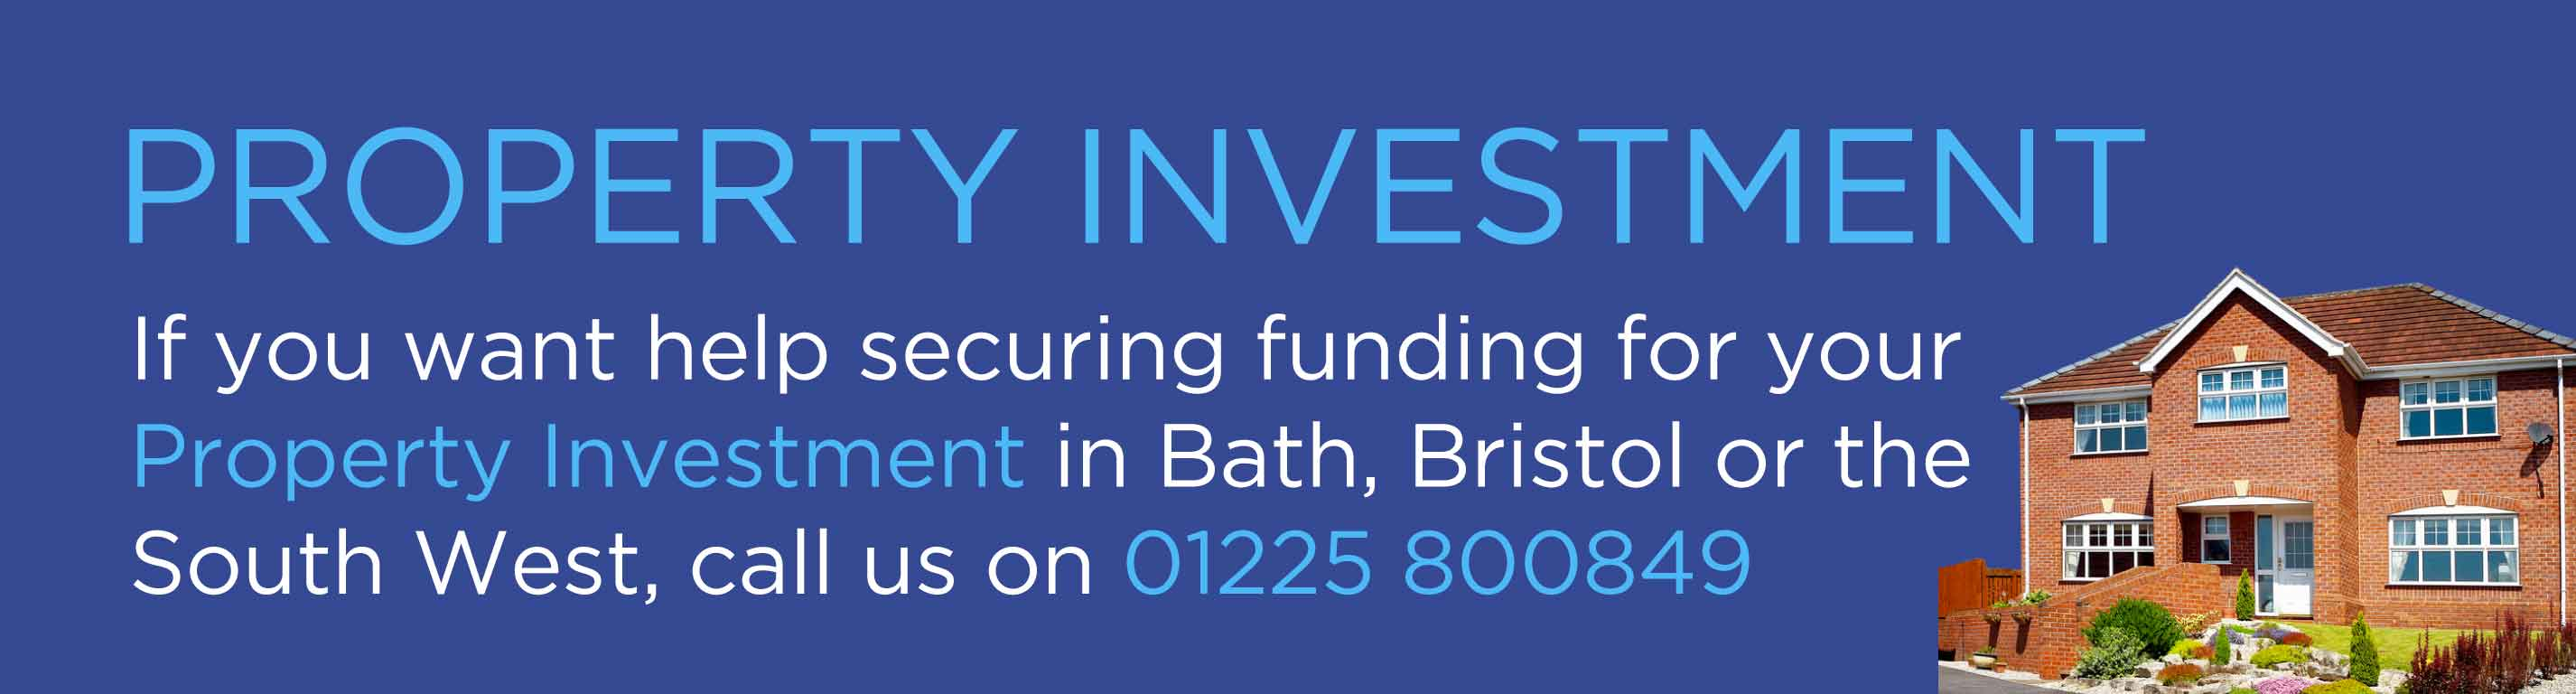 property investment bath and bristol